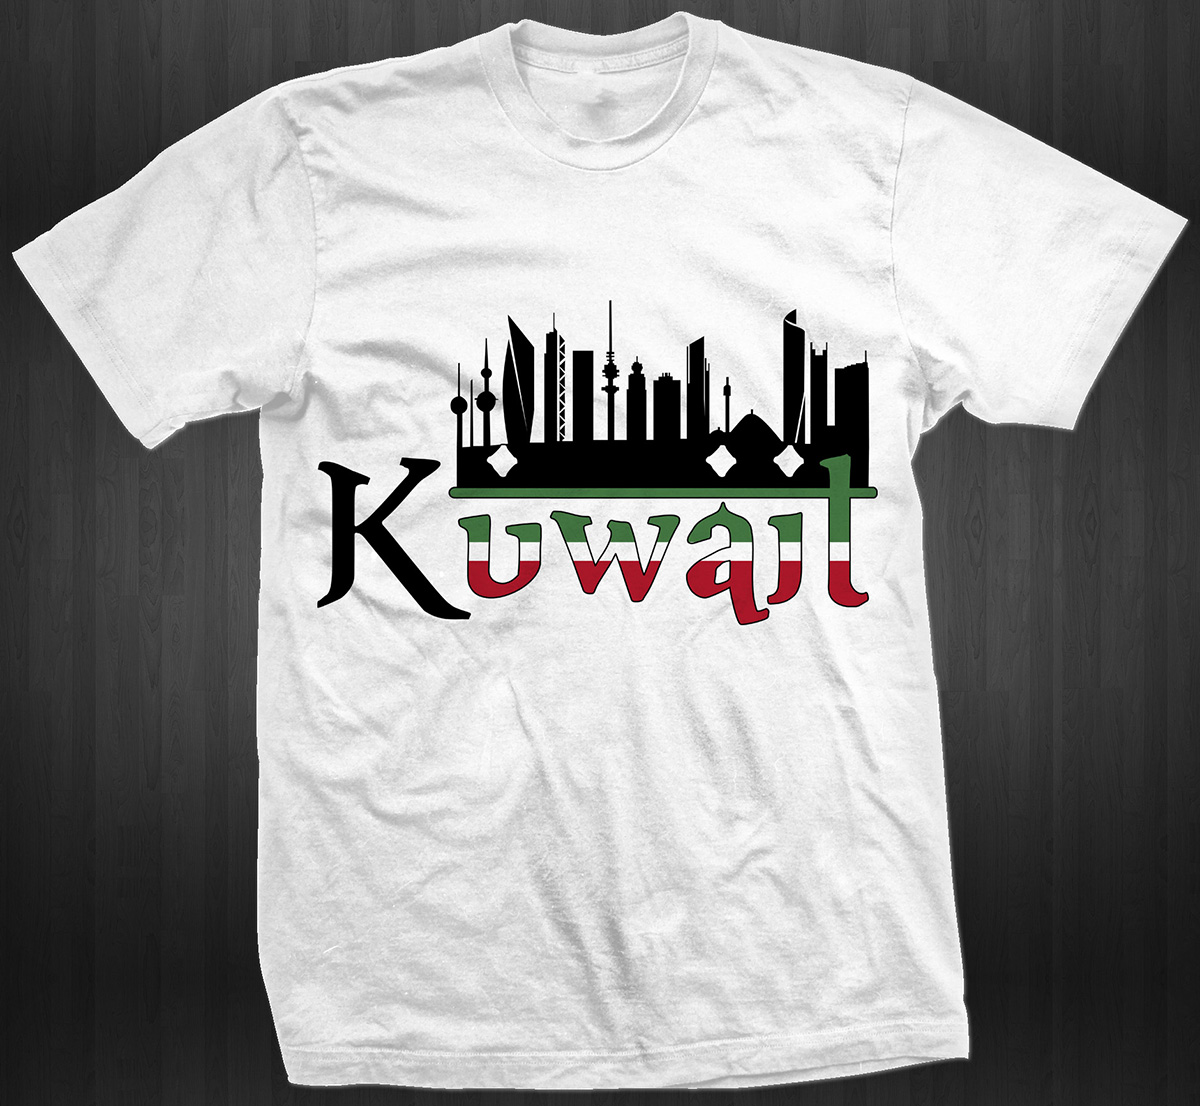 Personable conservative printing t shirt design for a for T shirt printing places